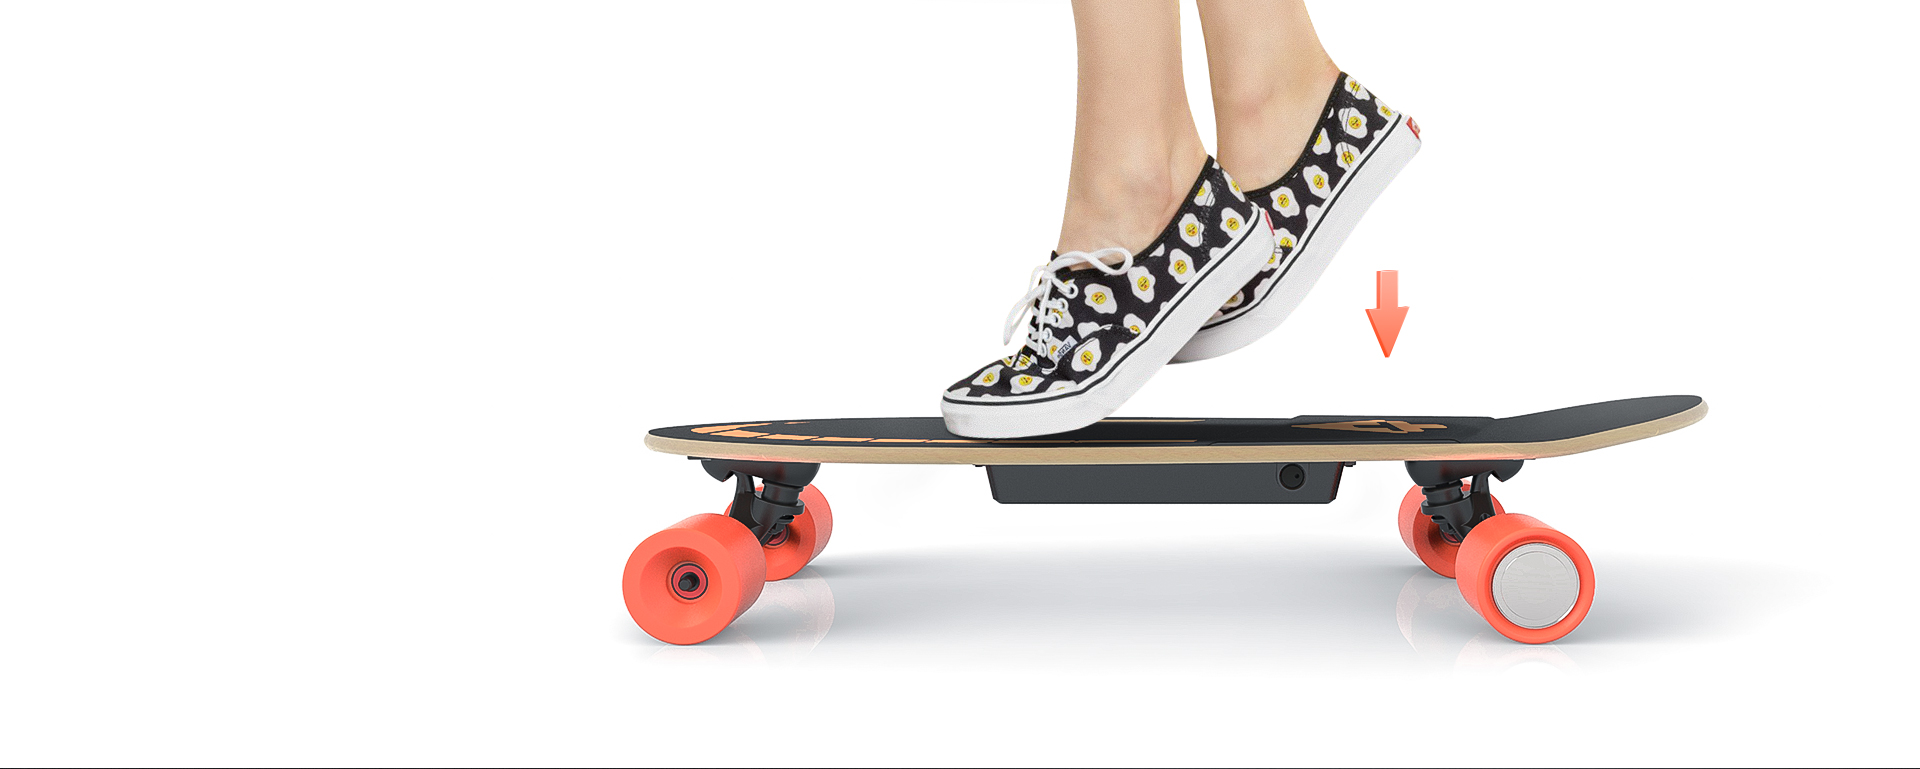 Standing on the left side of the board when it is turned on, place your right foot on the front of the board, kicking the floor by left foot to move forward and get a minimum certain speed of 4km/h, then placing your left foot on board sensor area to get persistent power-assist.